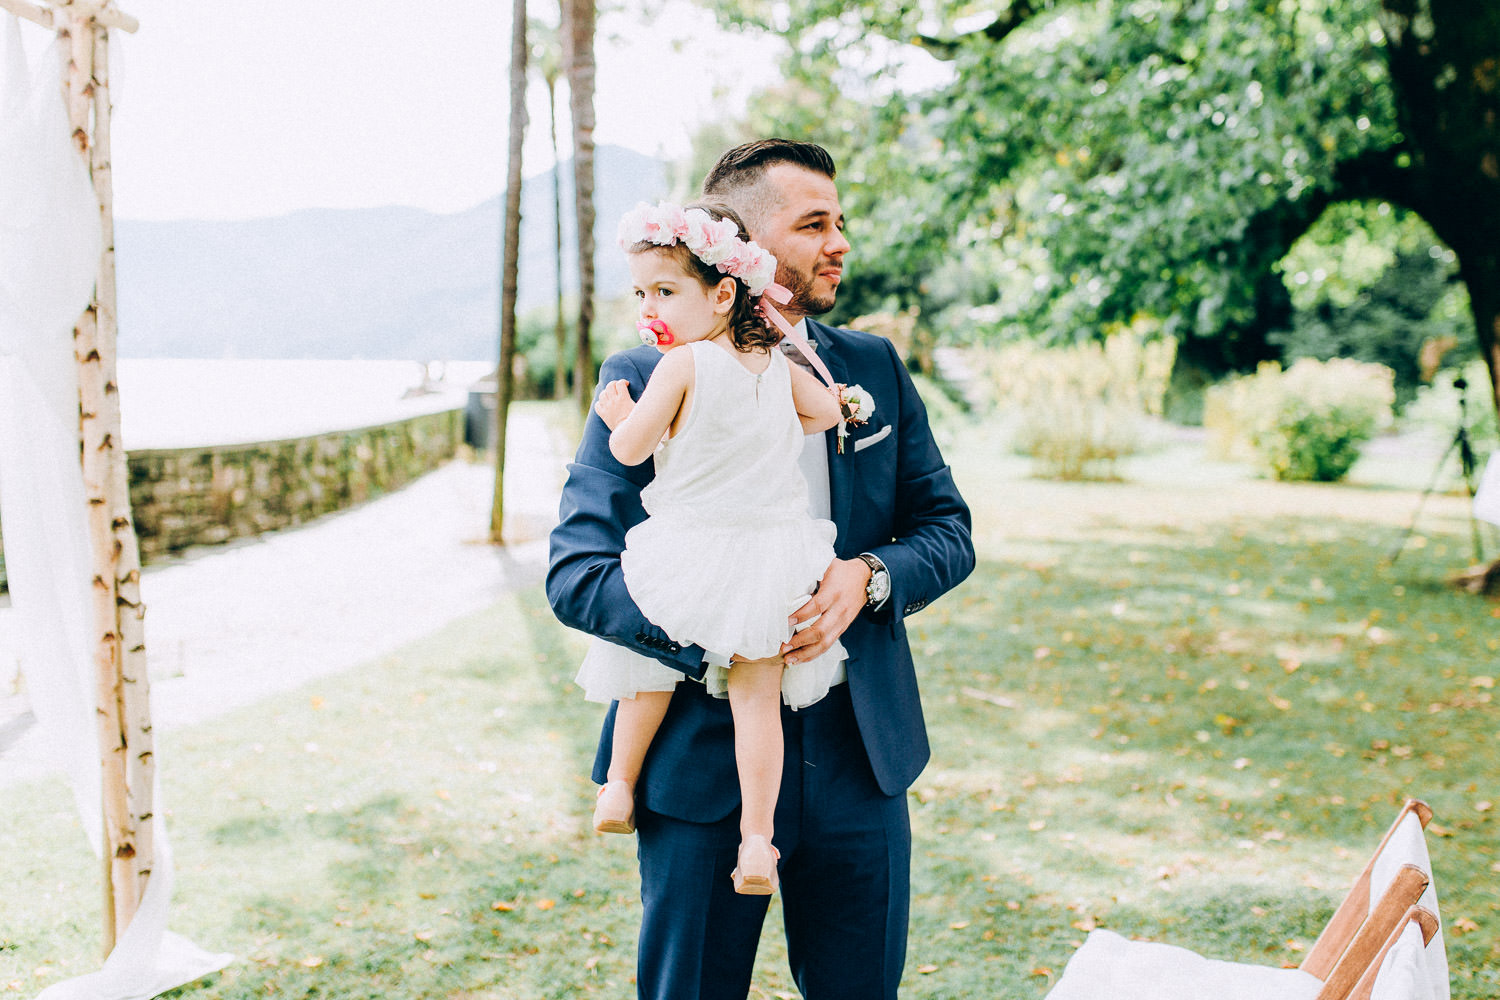 davidandkathrin-com-ticino-brissago-wedding-photographer-076